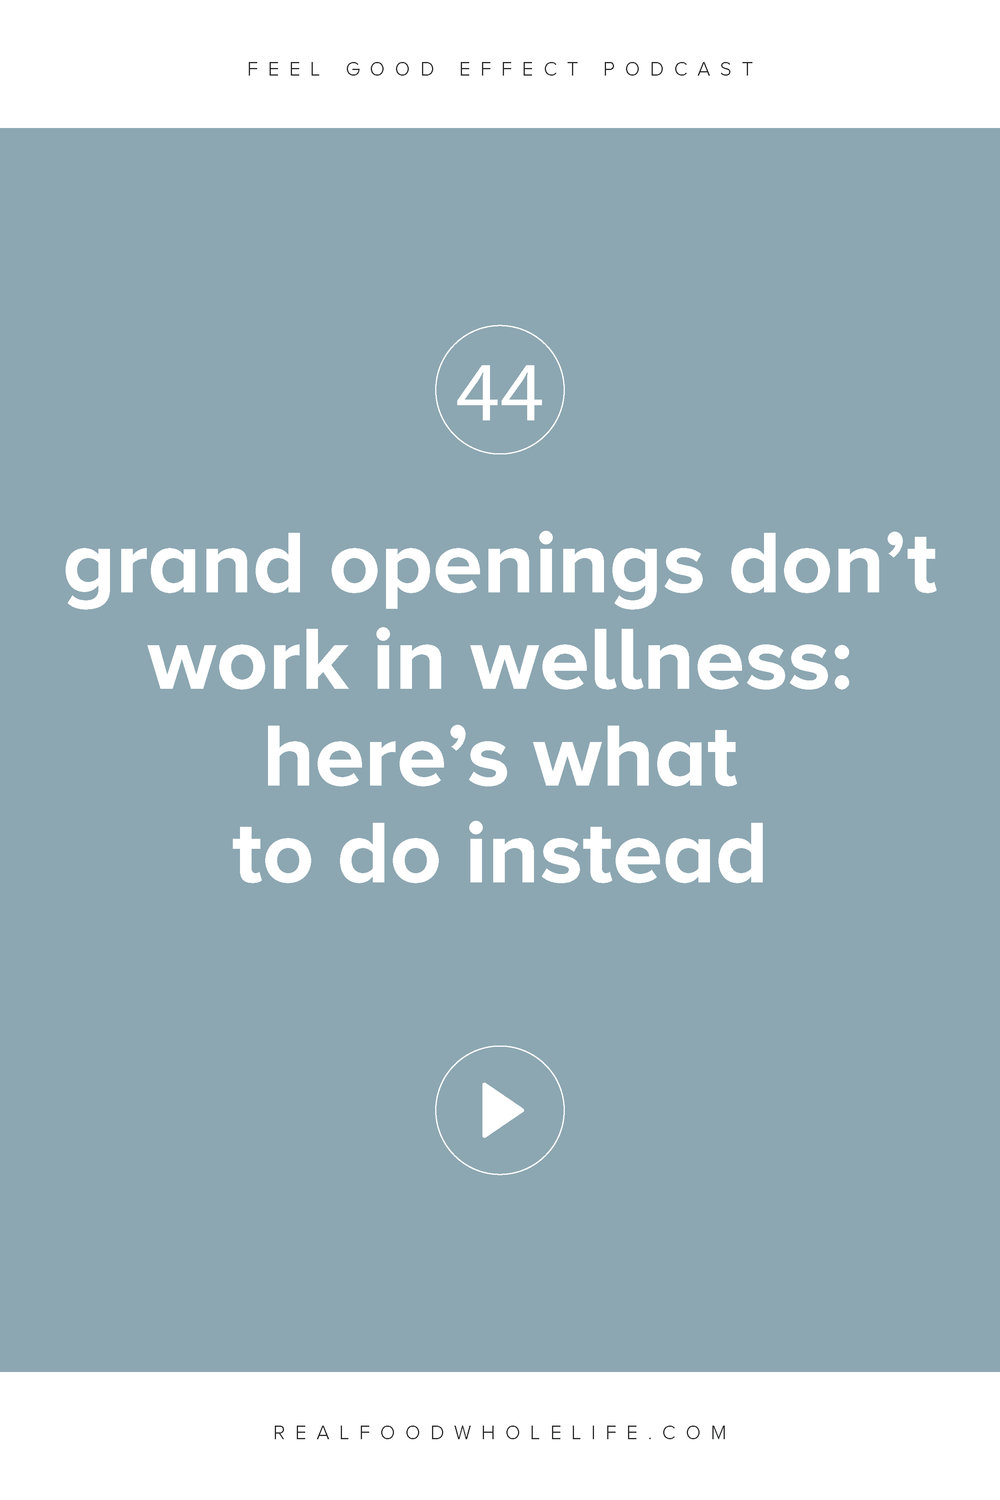 grand openings don't work in wellness- here's what to do instead